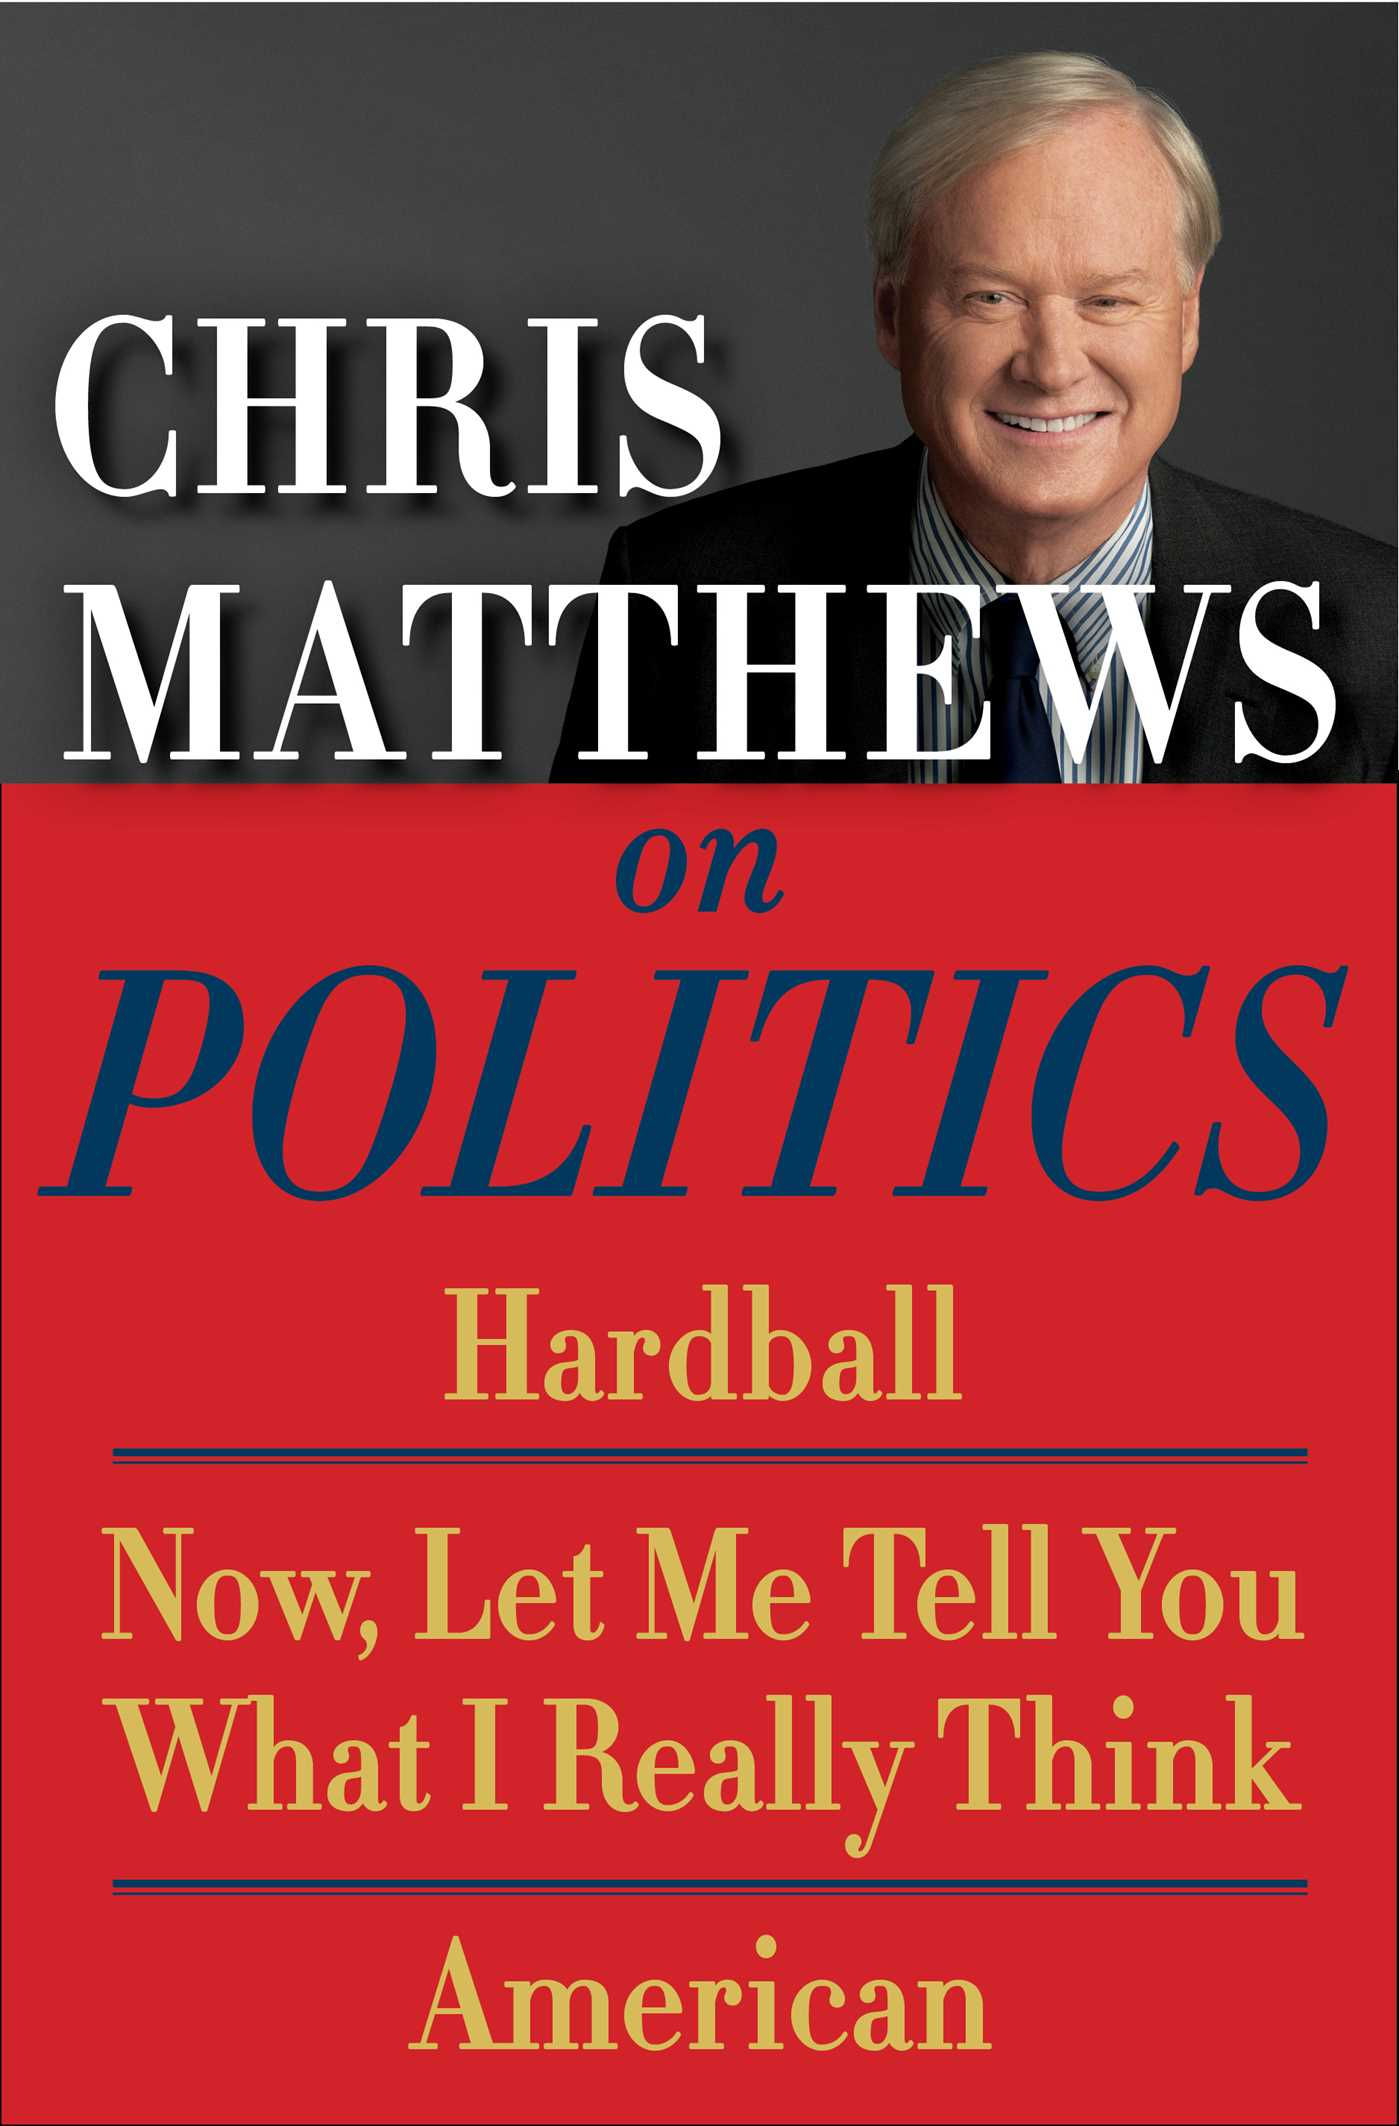 Chris matthews on politics e book box set 9781476760827 hr